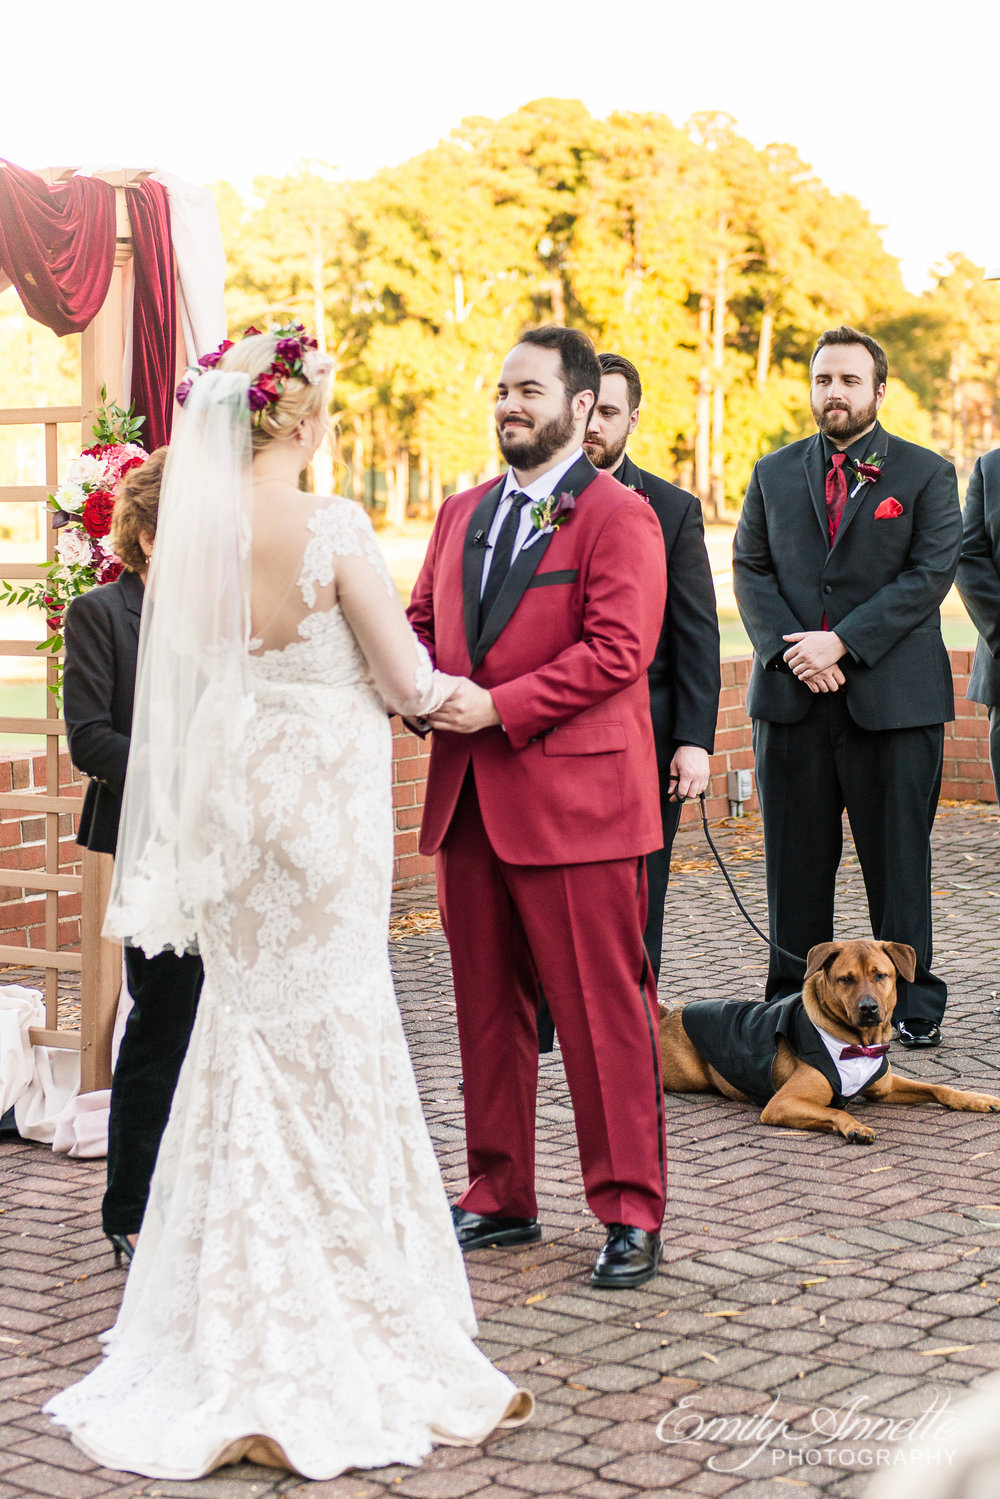 A groom in a red suit looking at his bride during an outdoor wedding ceremony at Willow Oaks Country Club in Richmond, Virginia